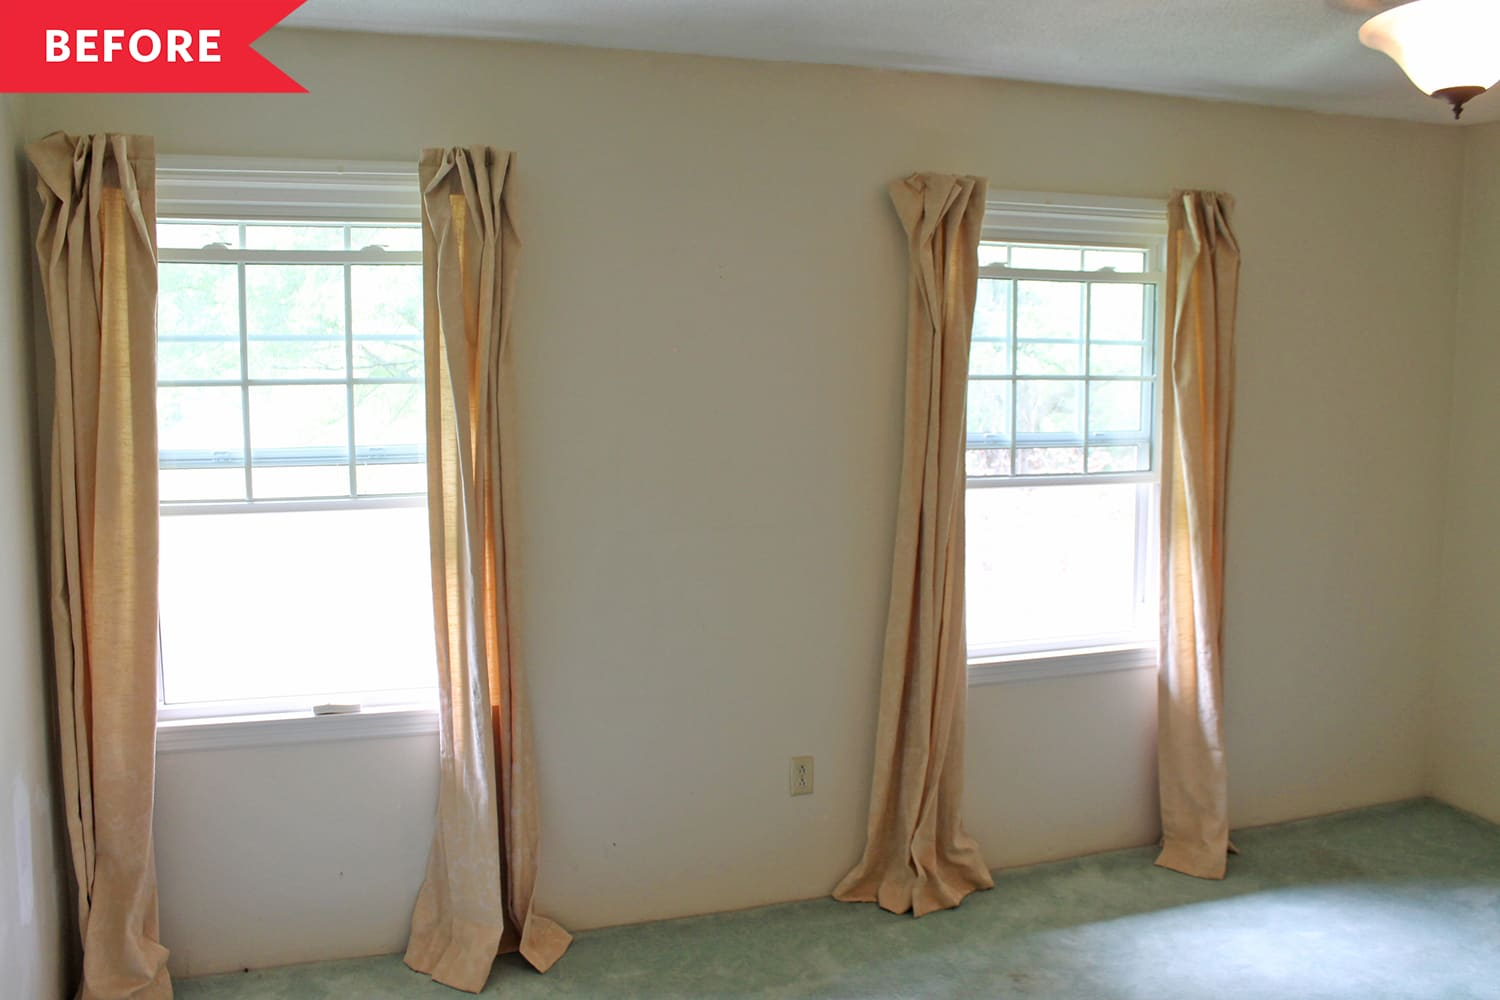 Before and After: A Blah Bedroom's Soothing Refresh Has Ideas Starting at $10